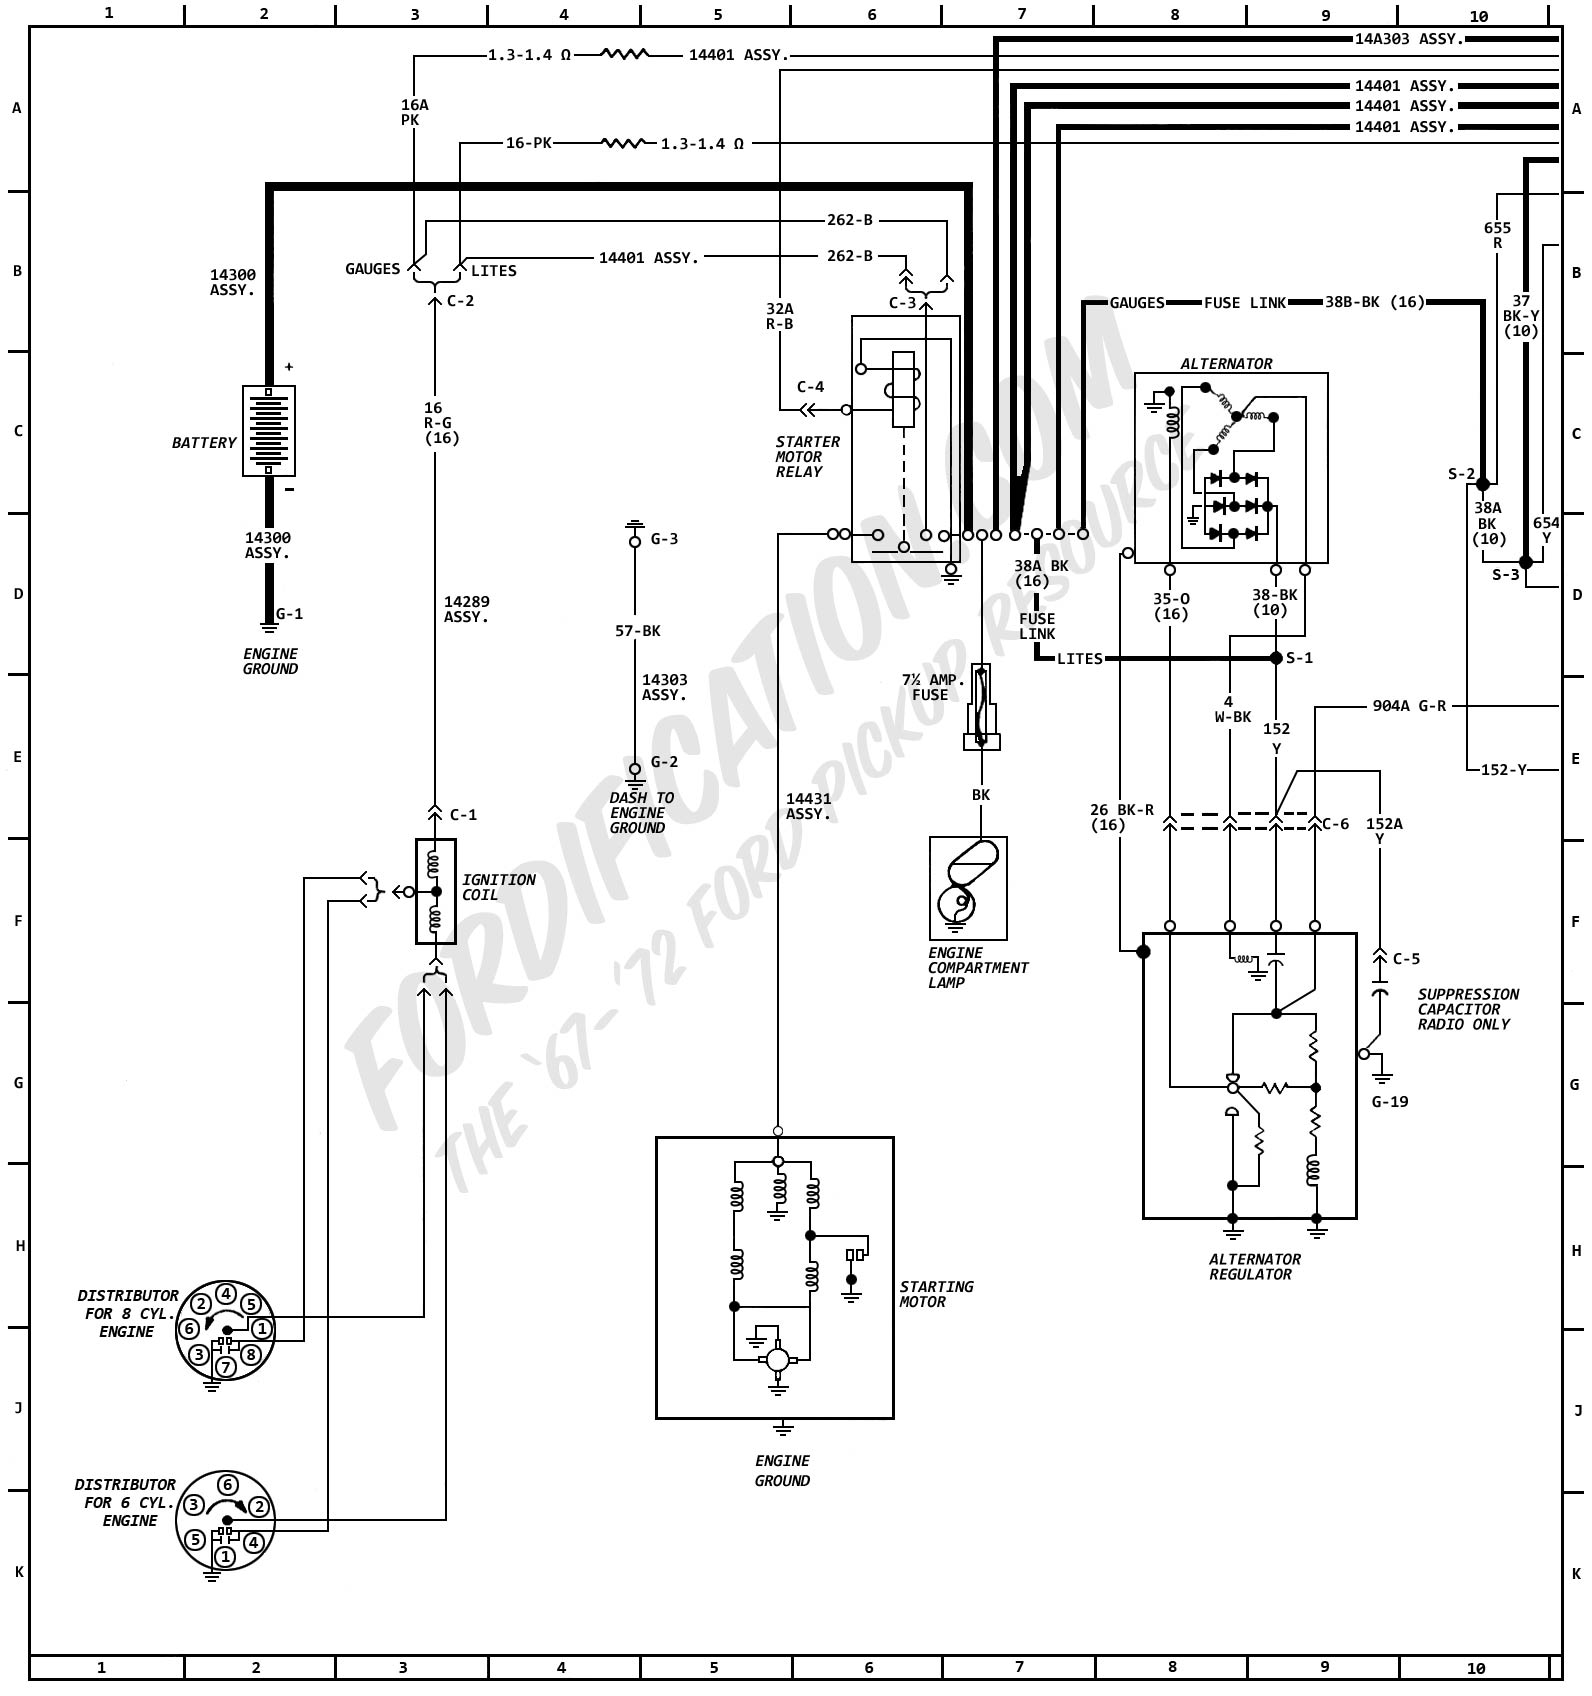 1972MasterWiring_01 1972 ford truck wiring diagrams fordification com fordification wiring diagram at gsmportal.co